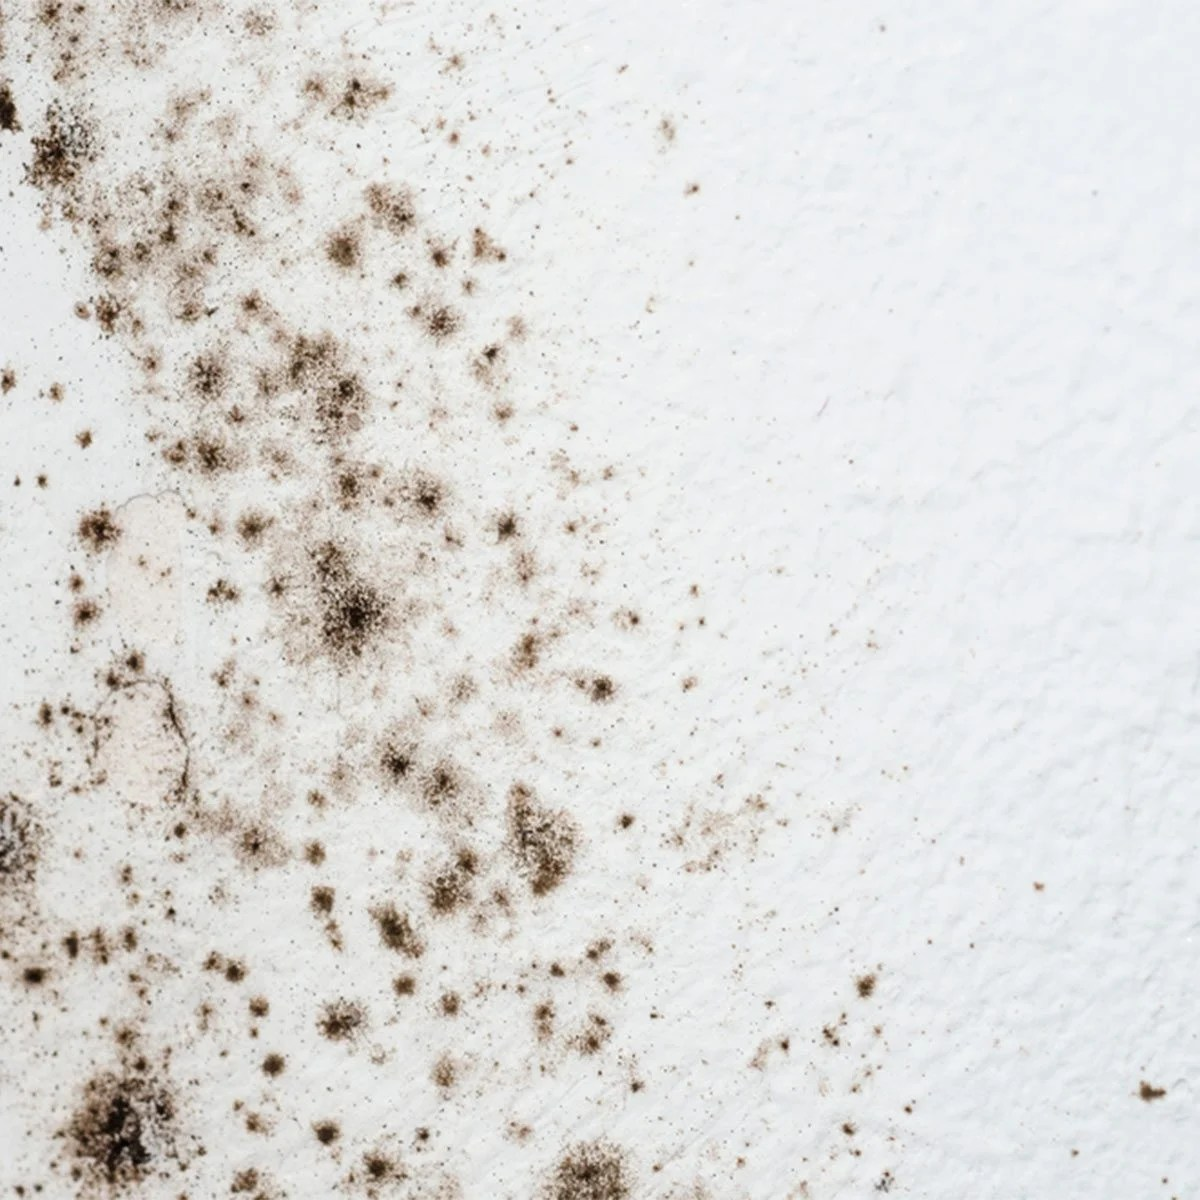 How To Get Rid Of Mold On Bathroom Walls Family Handyman